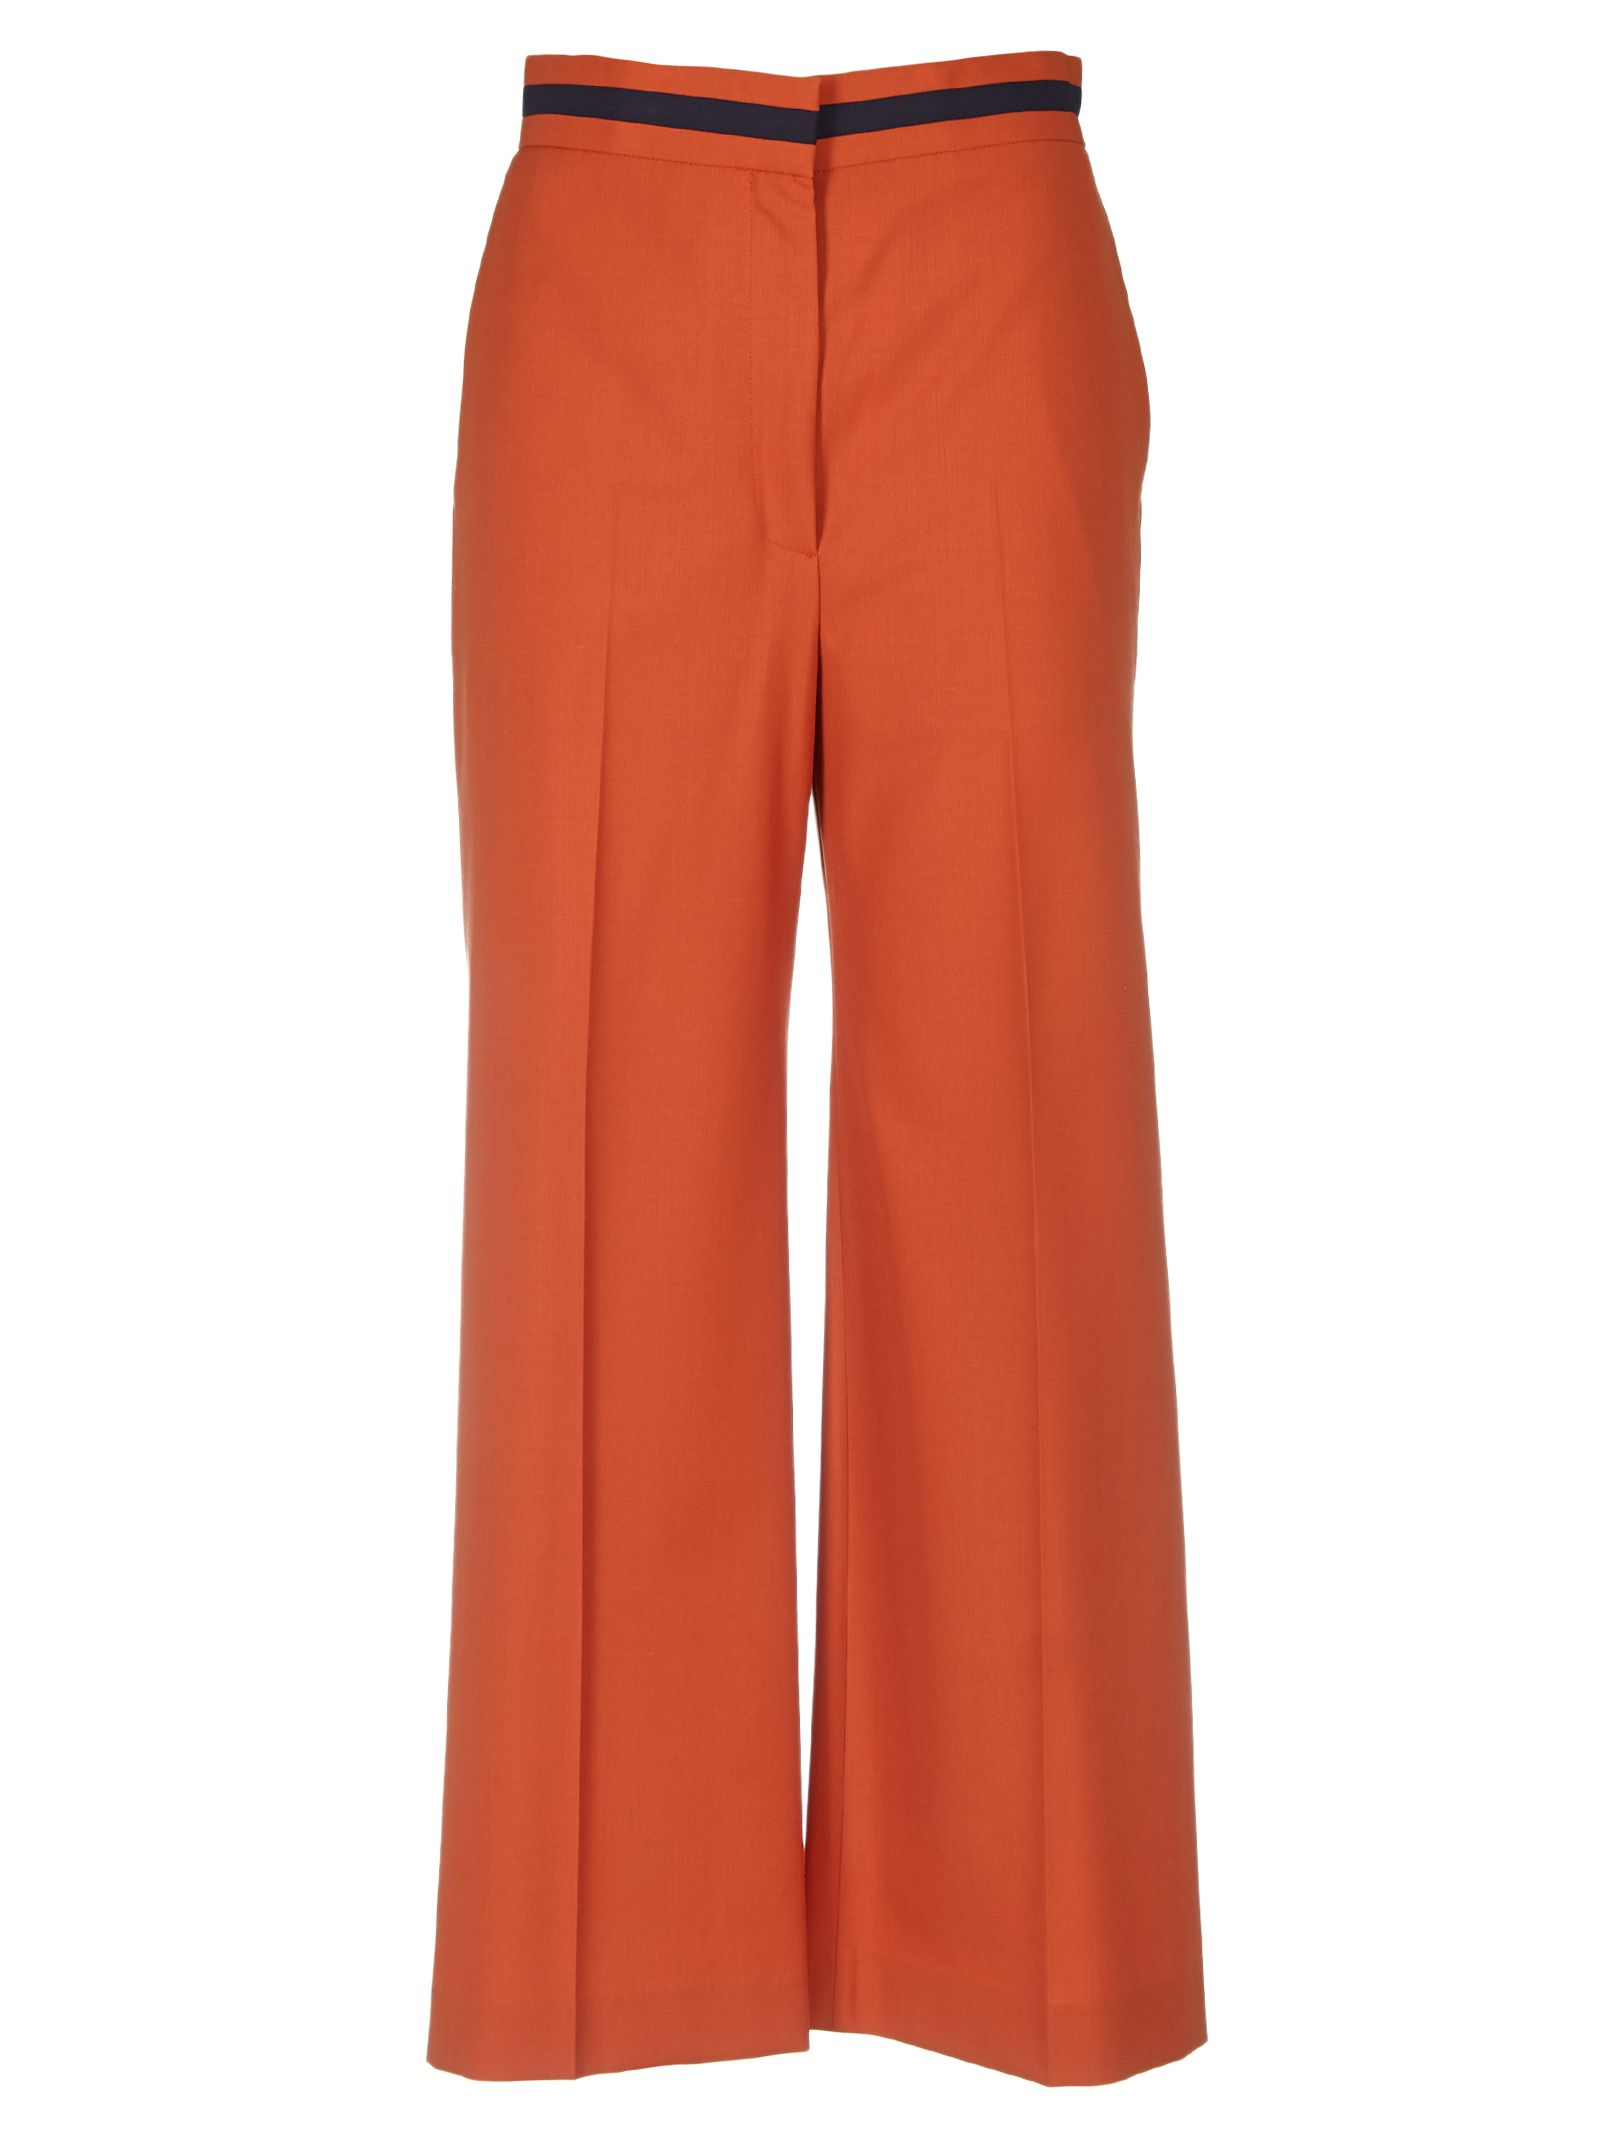 Paul Smith Flared Trousers